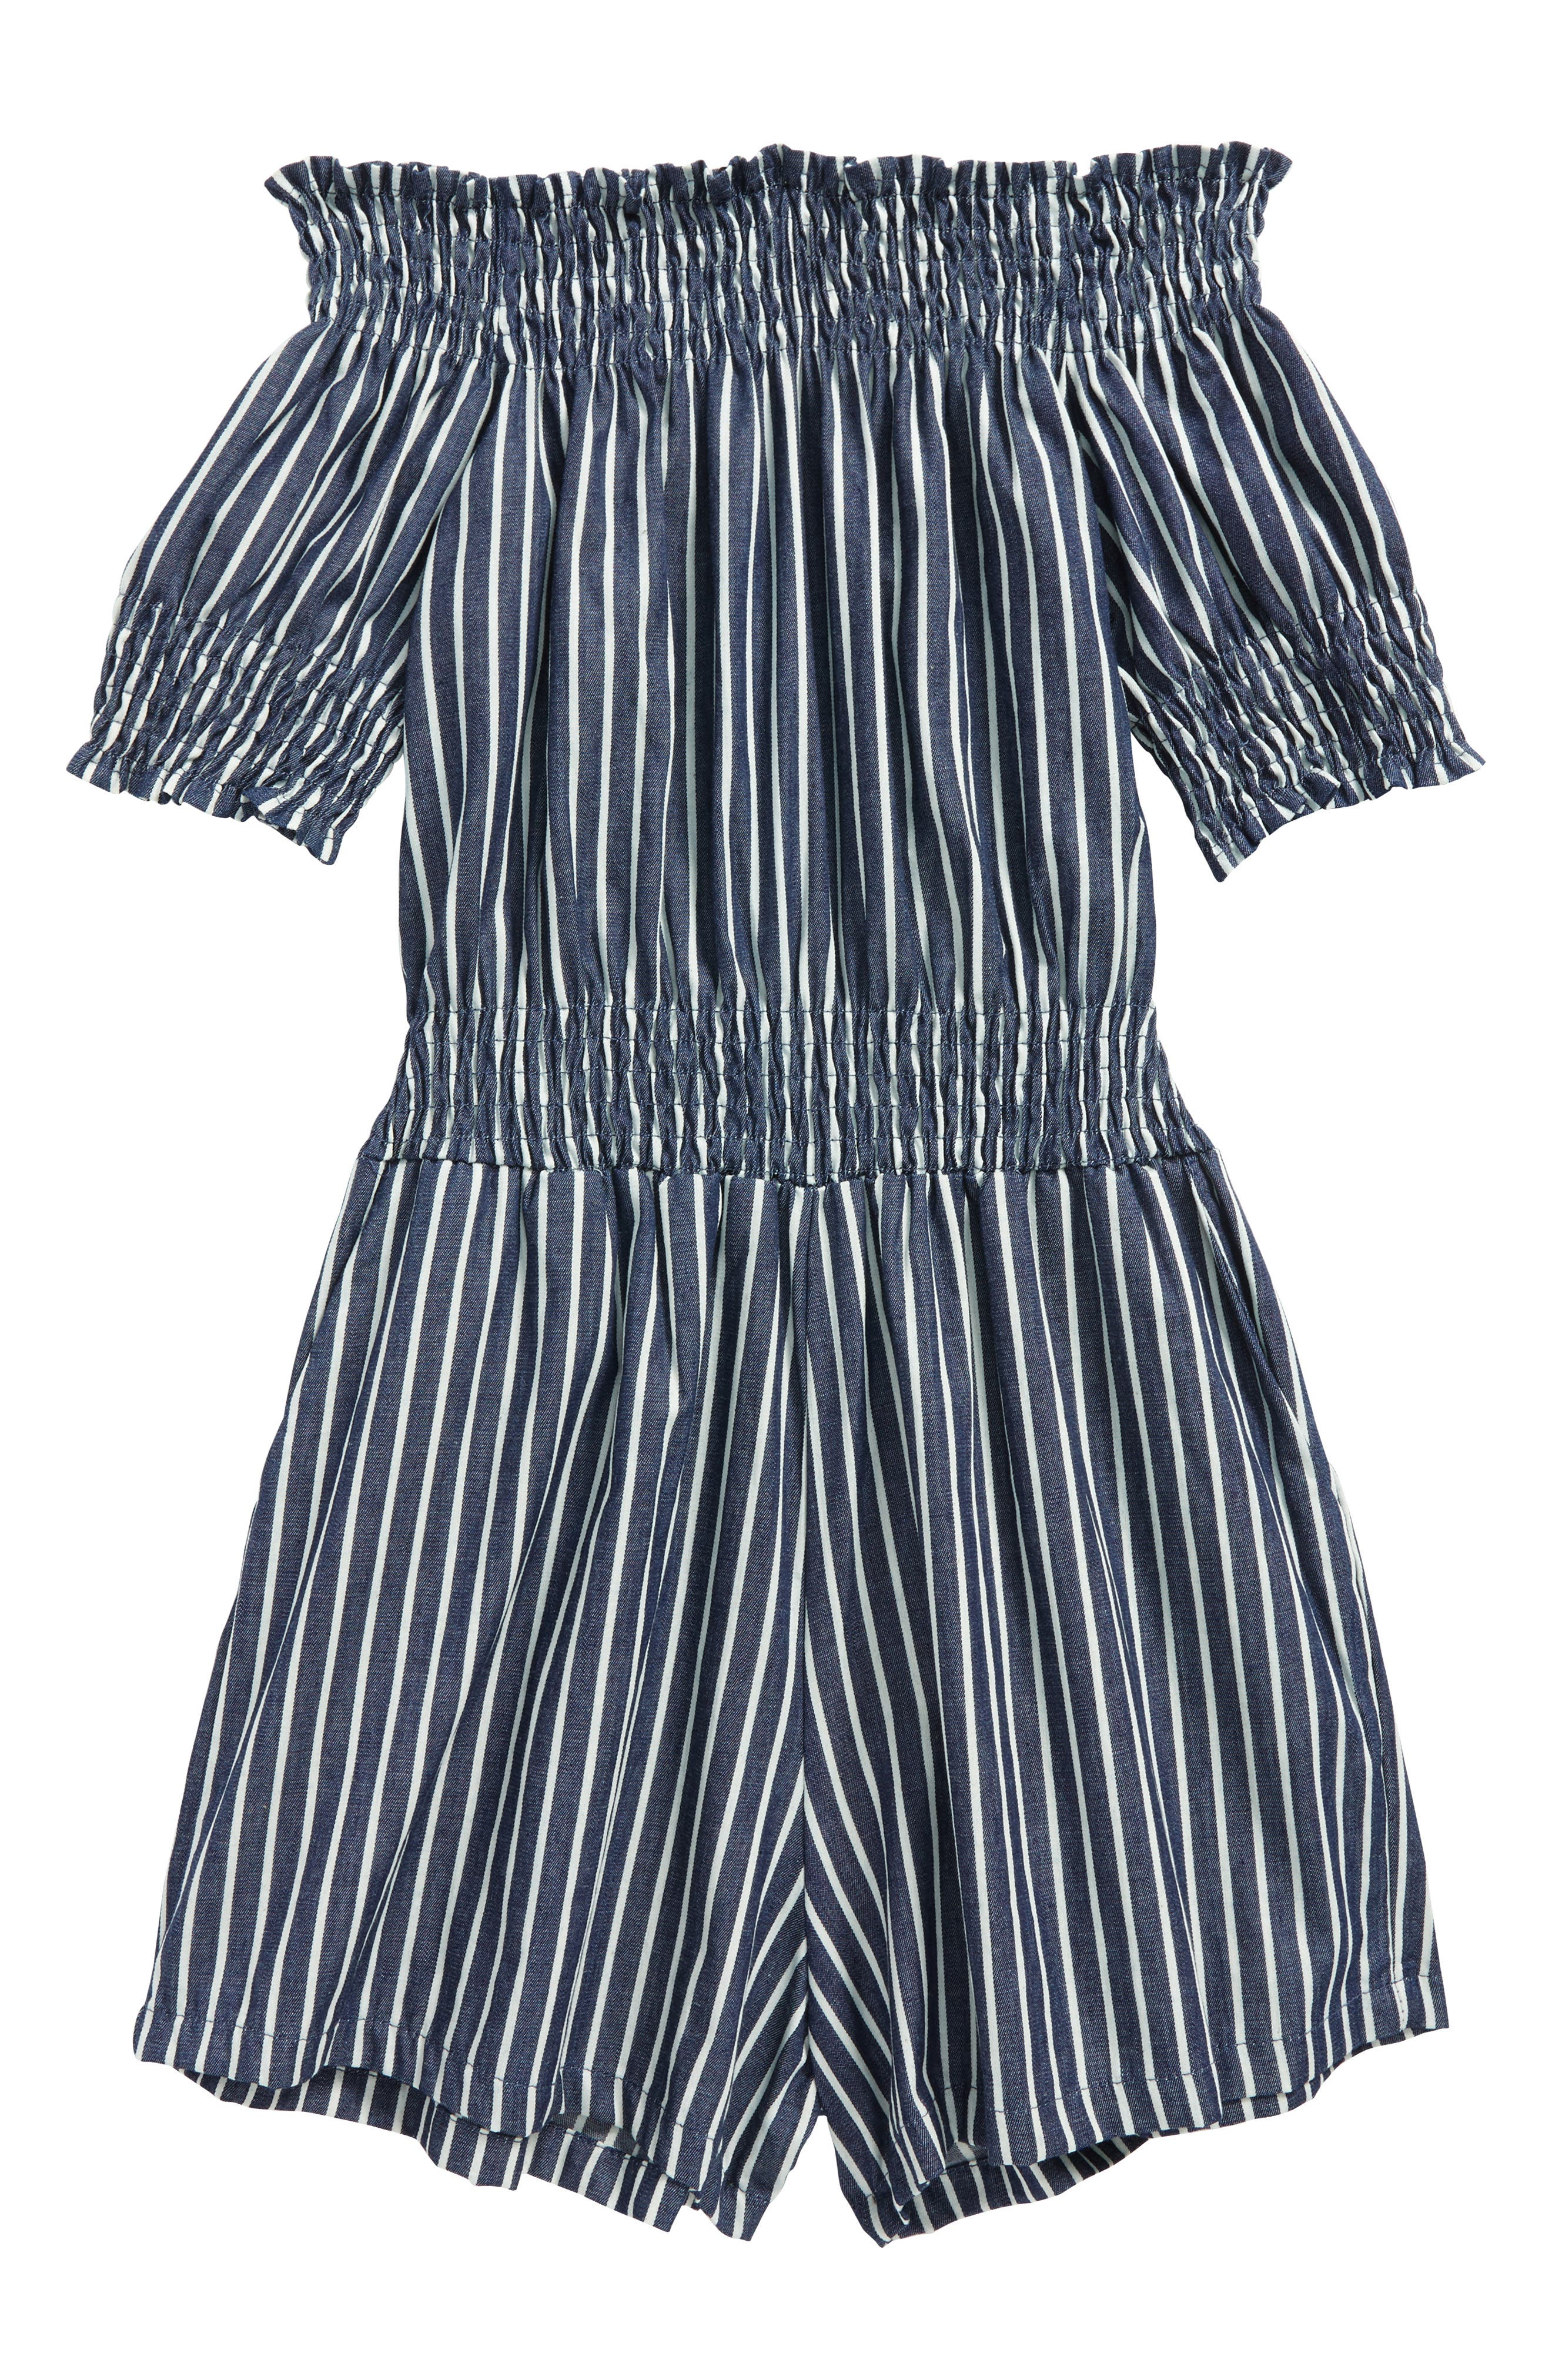 Stripe Off the Shoulder Romper,                             Main thumbnail 1, color,                             410